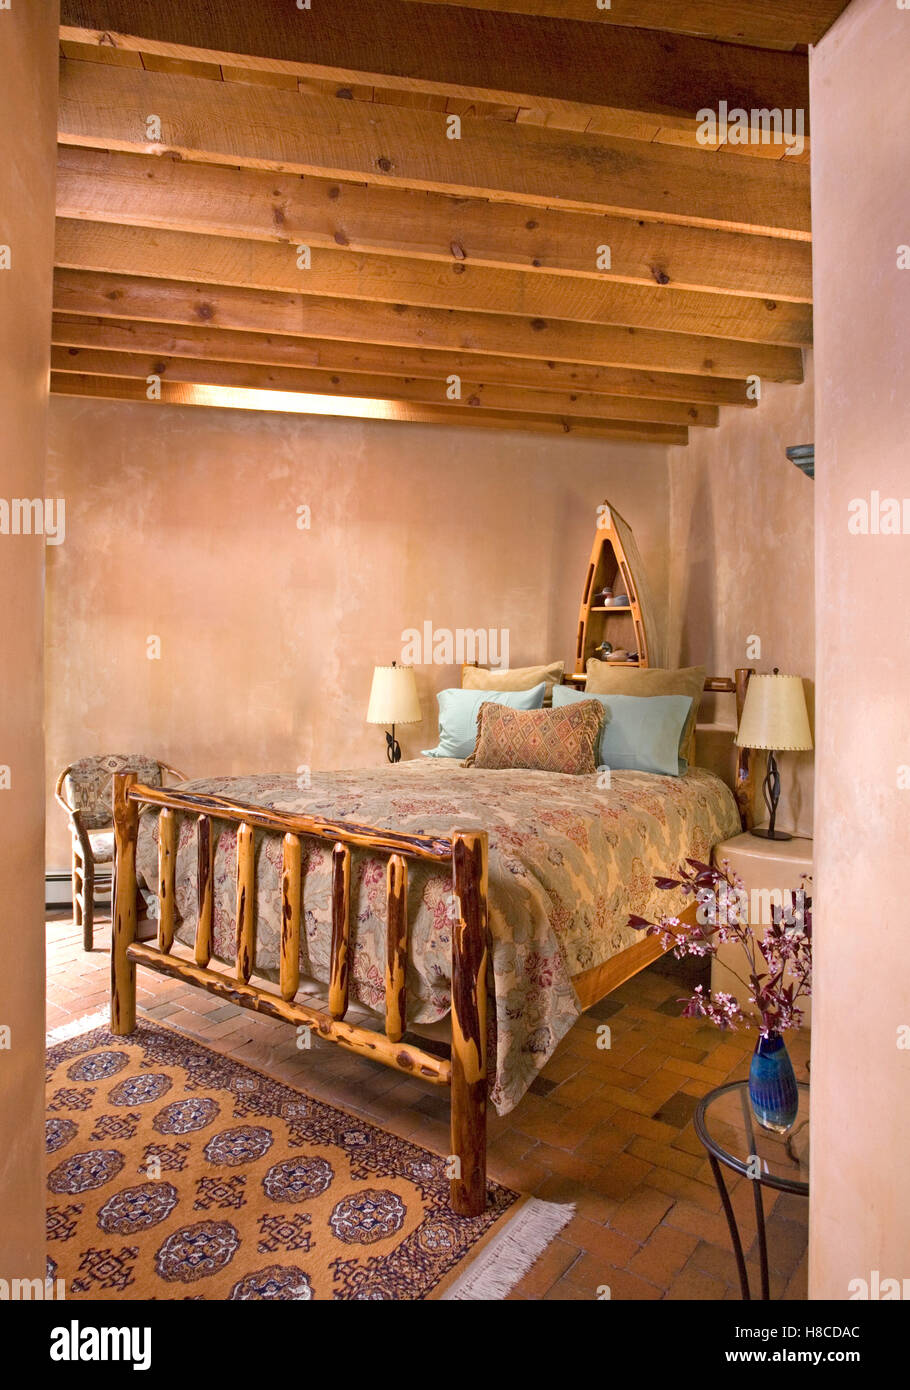 Wood framed bed in rustic, country bedroom with timber framed roof and adobe walls, Santa Fe, New Mexico. - Stock Image